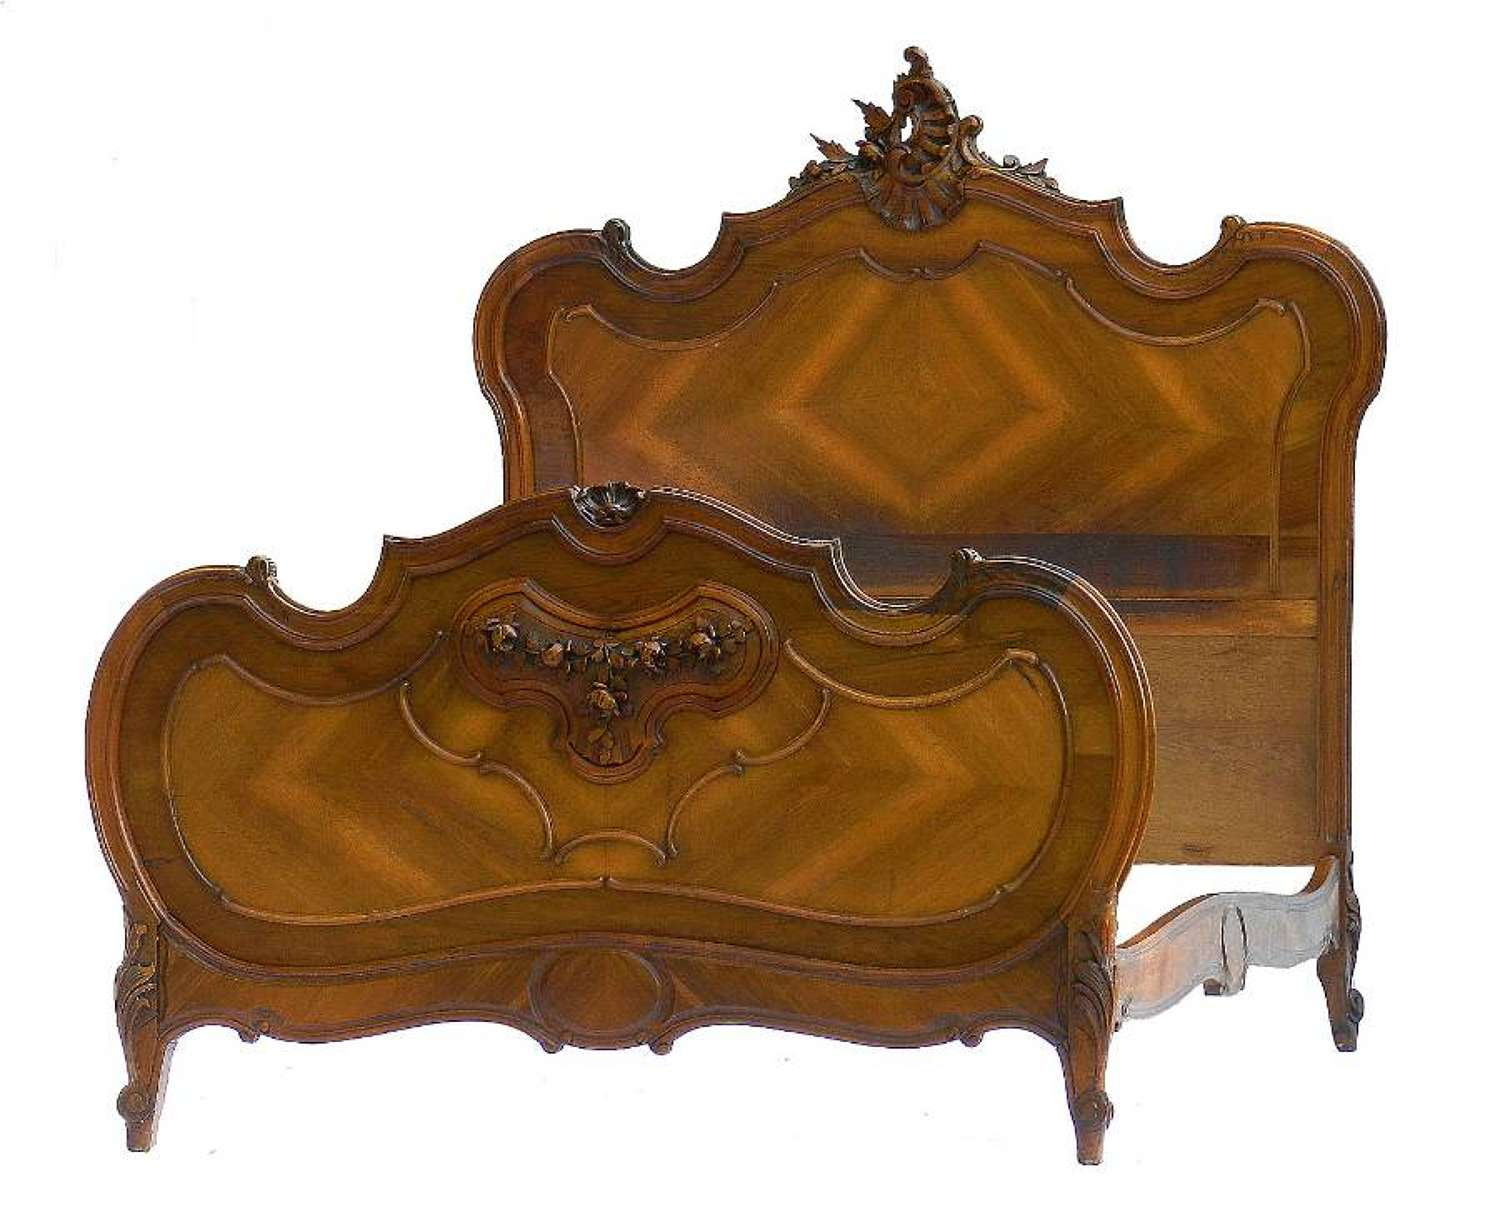 French Bed 19th century Louis Rococo